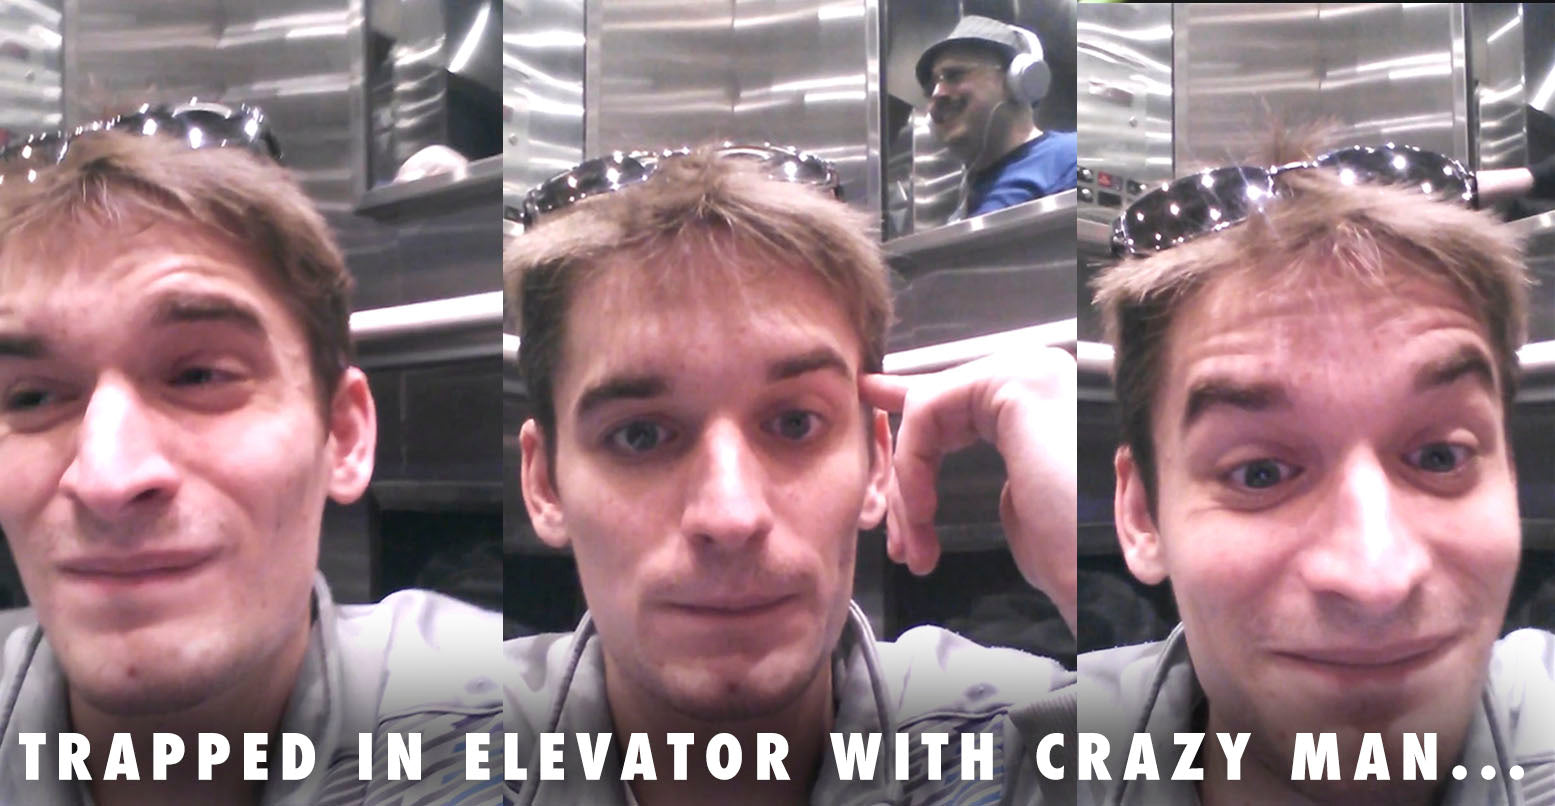 VIDEO: Guy Trapped In Elevator With Crazy Man Starts Filming Incident